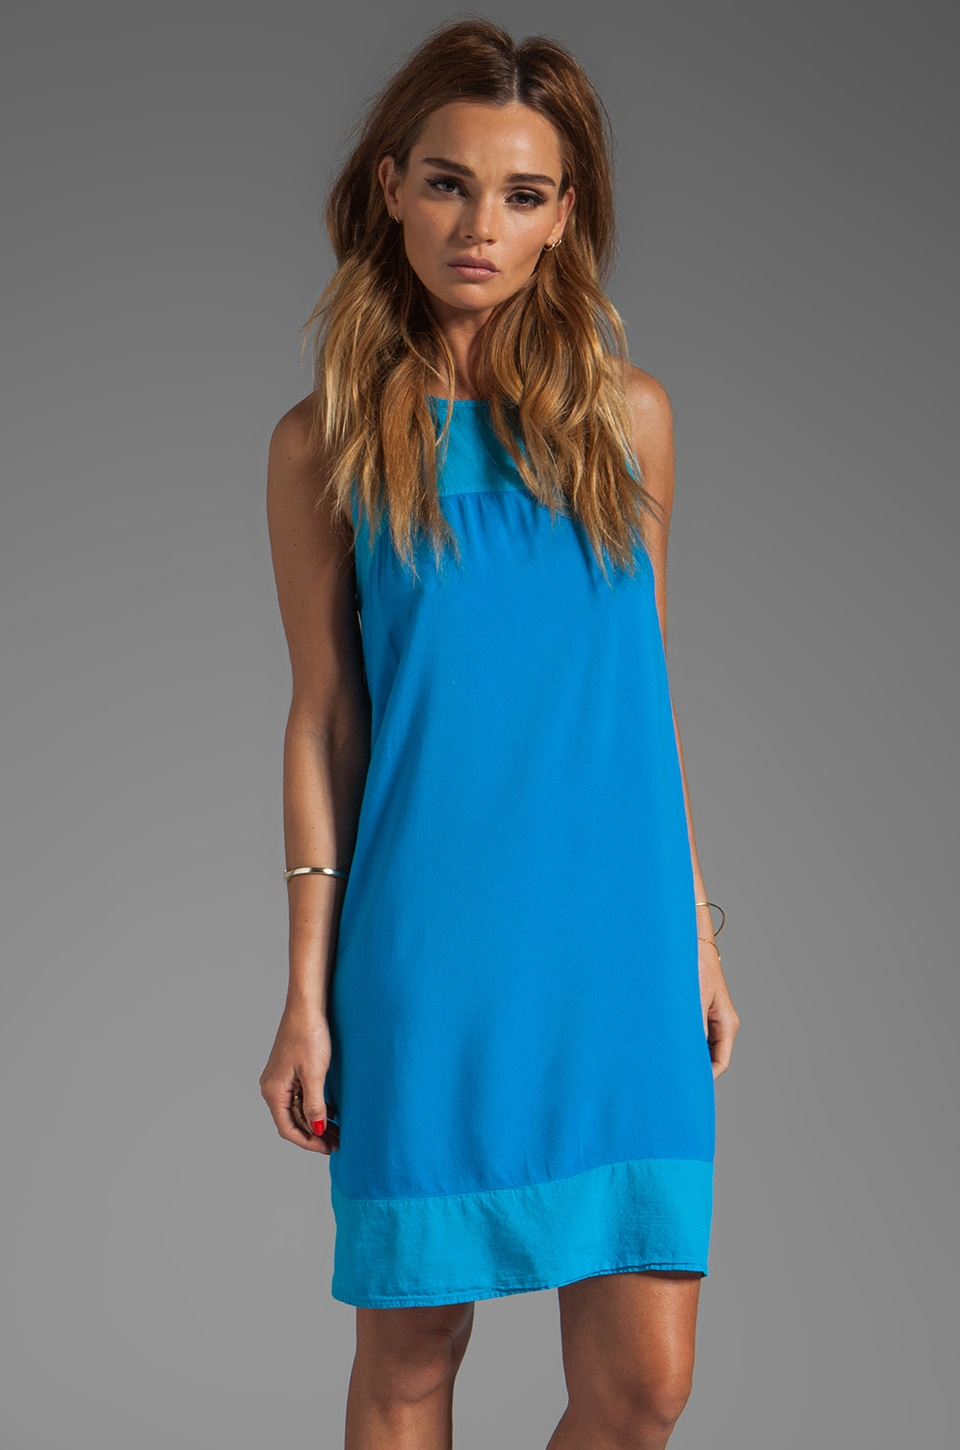 Michael Stars St. Barths Twill Simona Sleeveless Crew Neck A Line Dress in Cruise